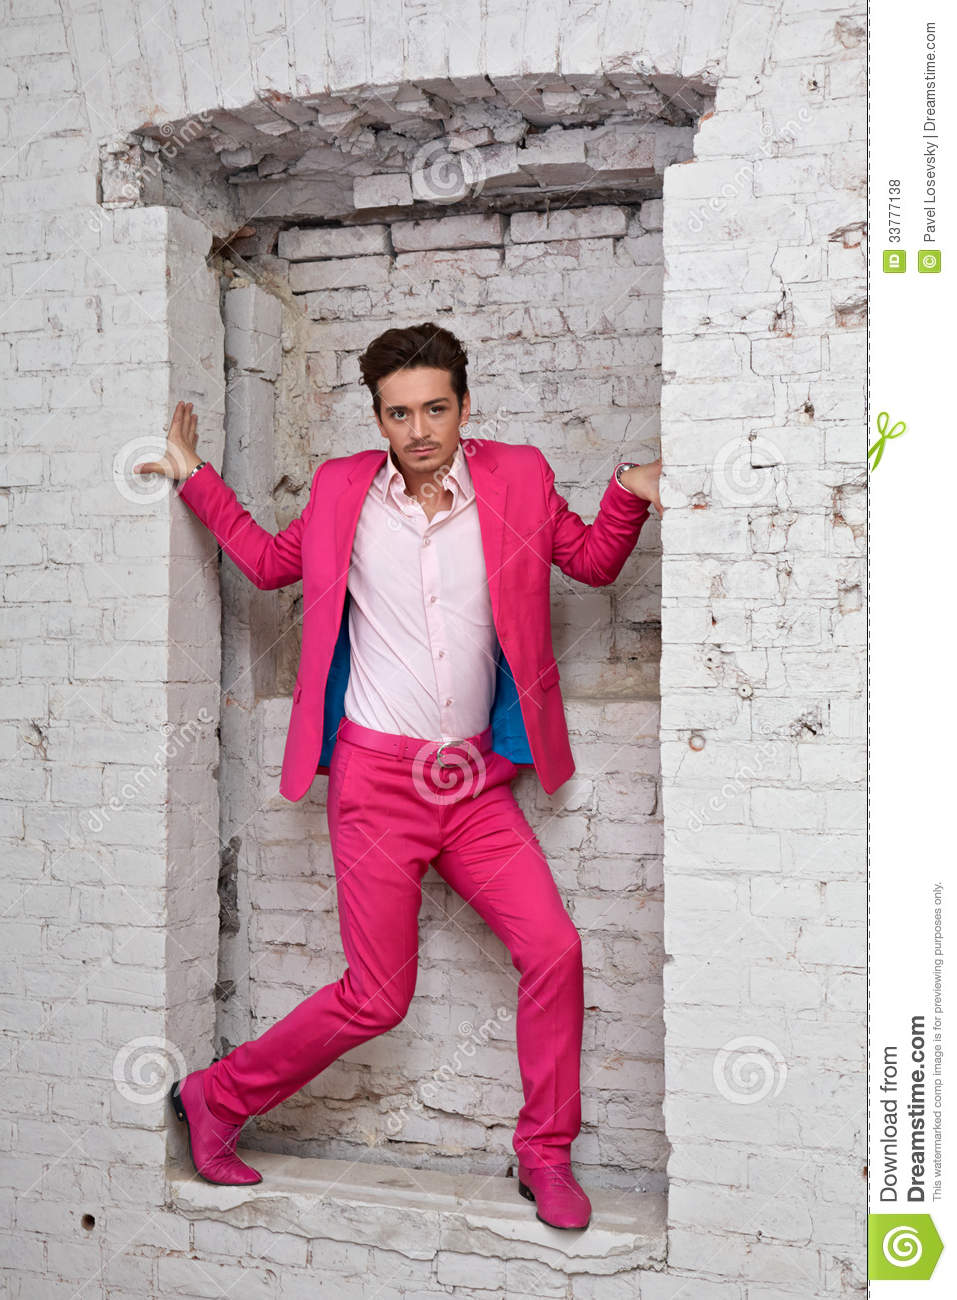 Young Man In Pink Suit And Shoes Stands With In Wall